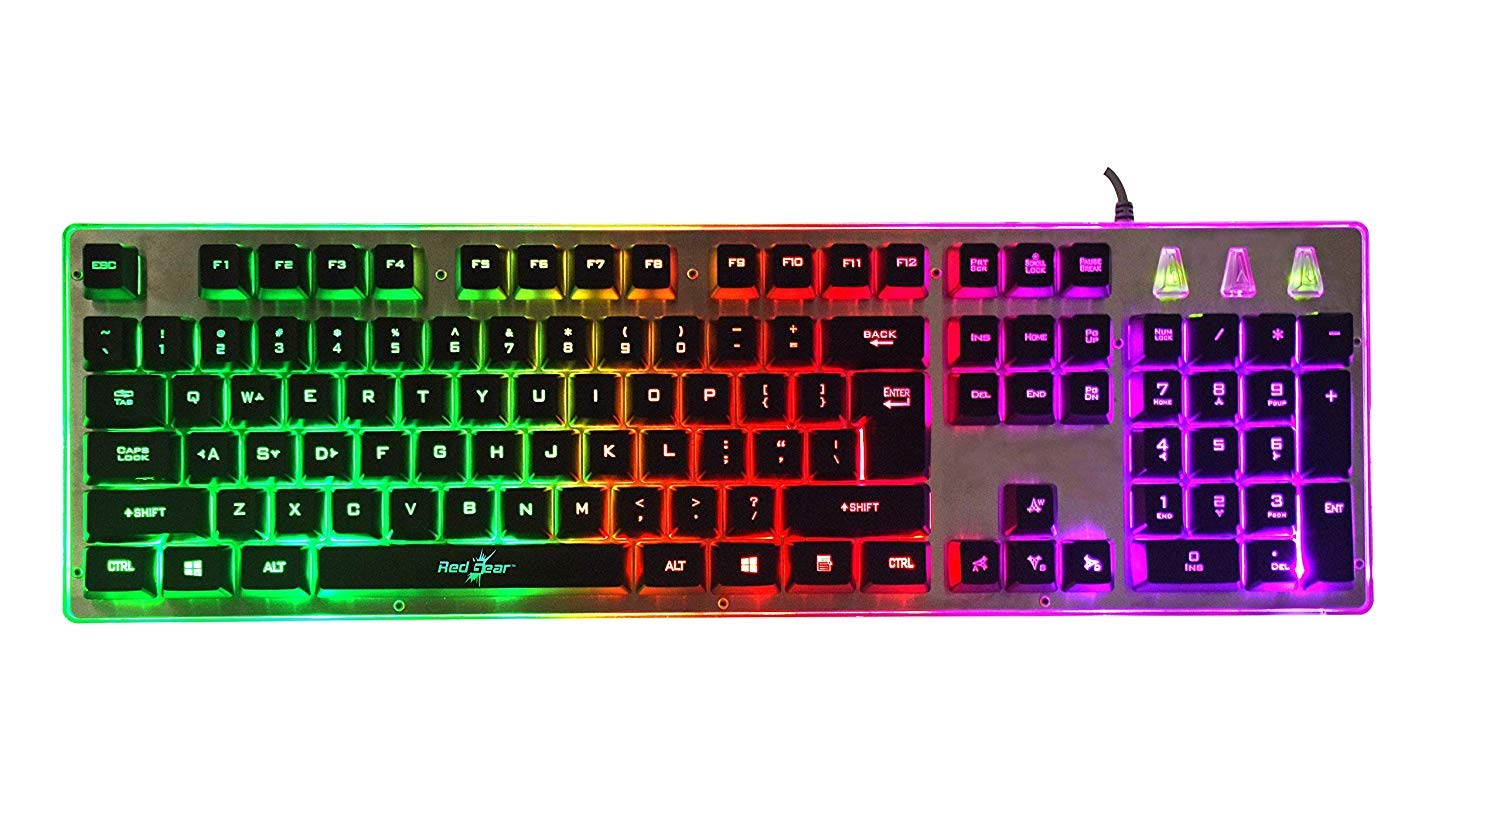 Redgear G-20 Gaming Keyboard And Mouse Combo With RGB Backlit Keyboard And 4800 Dpi RGB Mouse